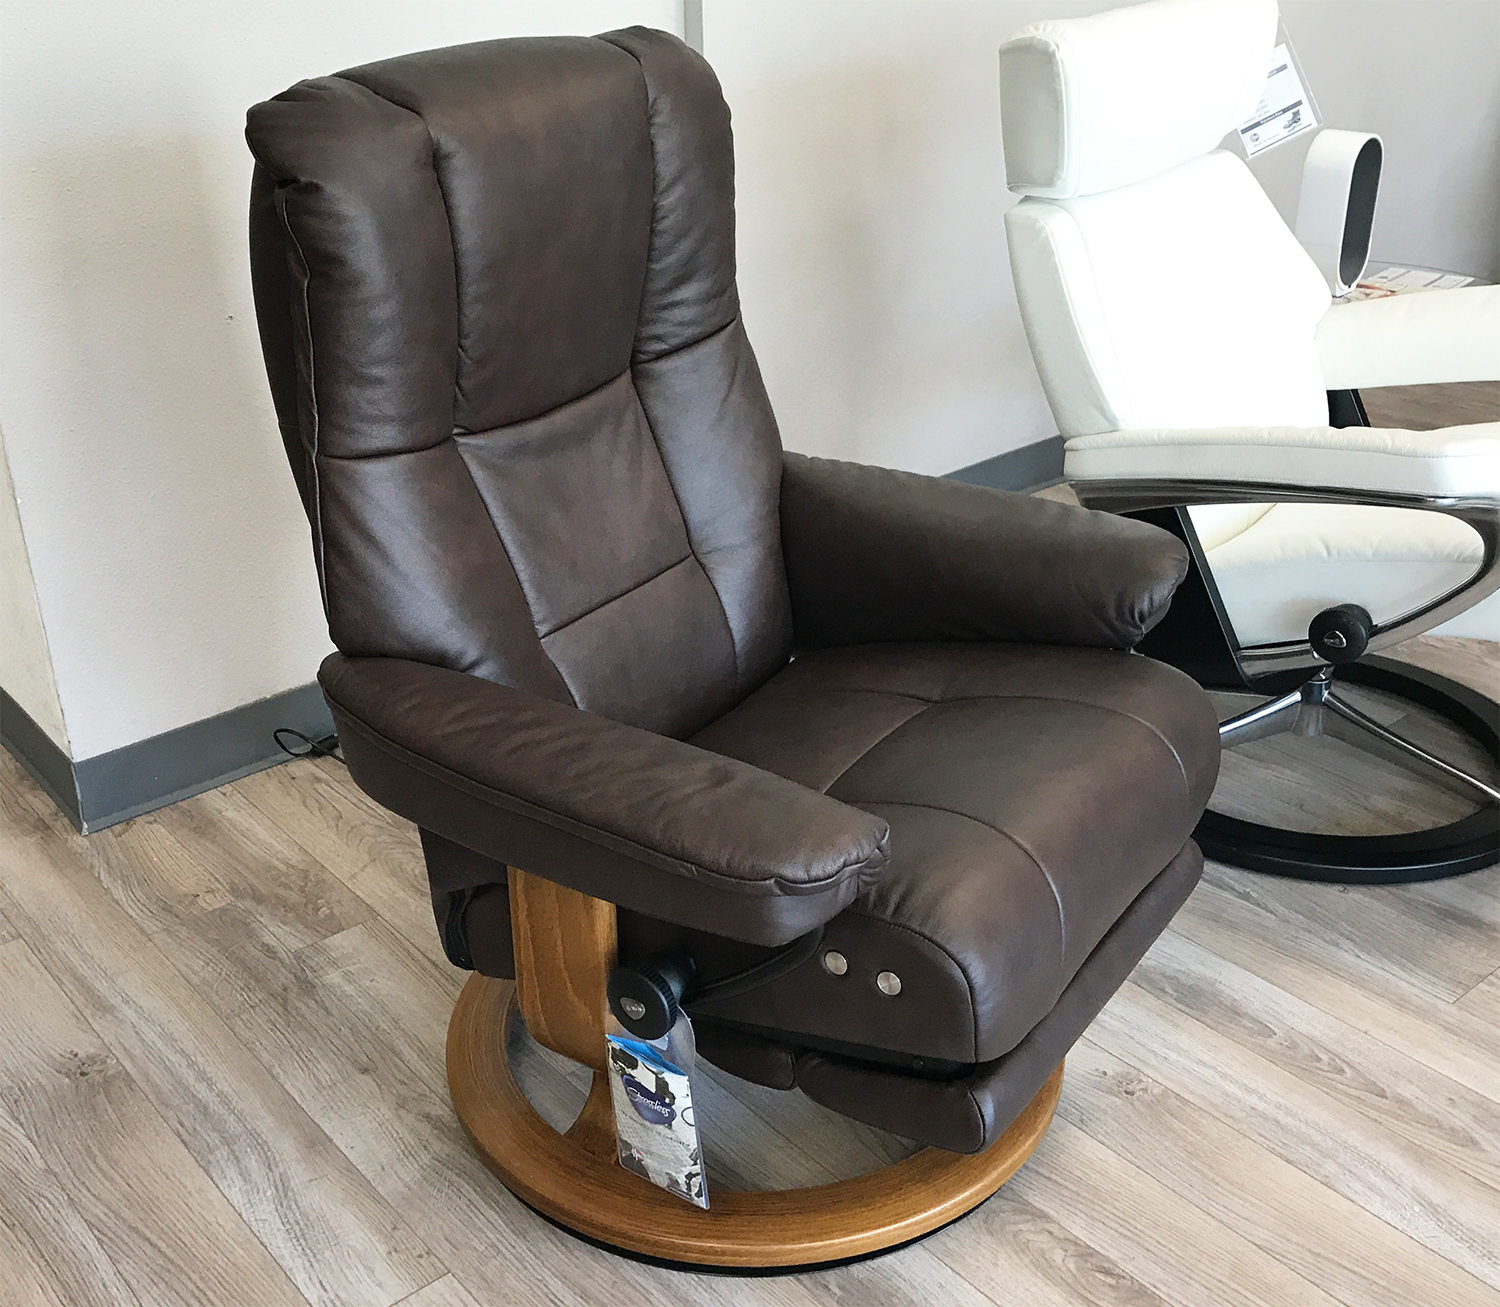 Leather Reclining Chairs Stressless Mayfair Legcomfort Paloma Chocolate Leather Recliner Chair By Ekornes